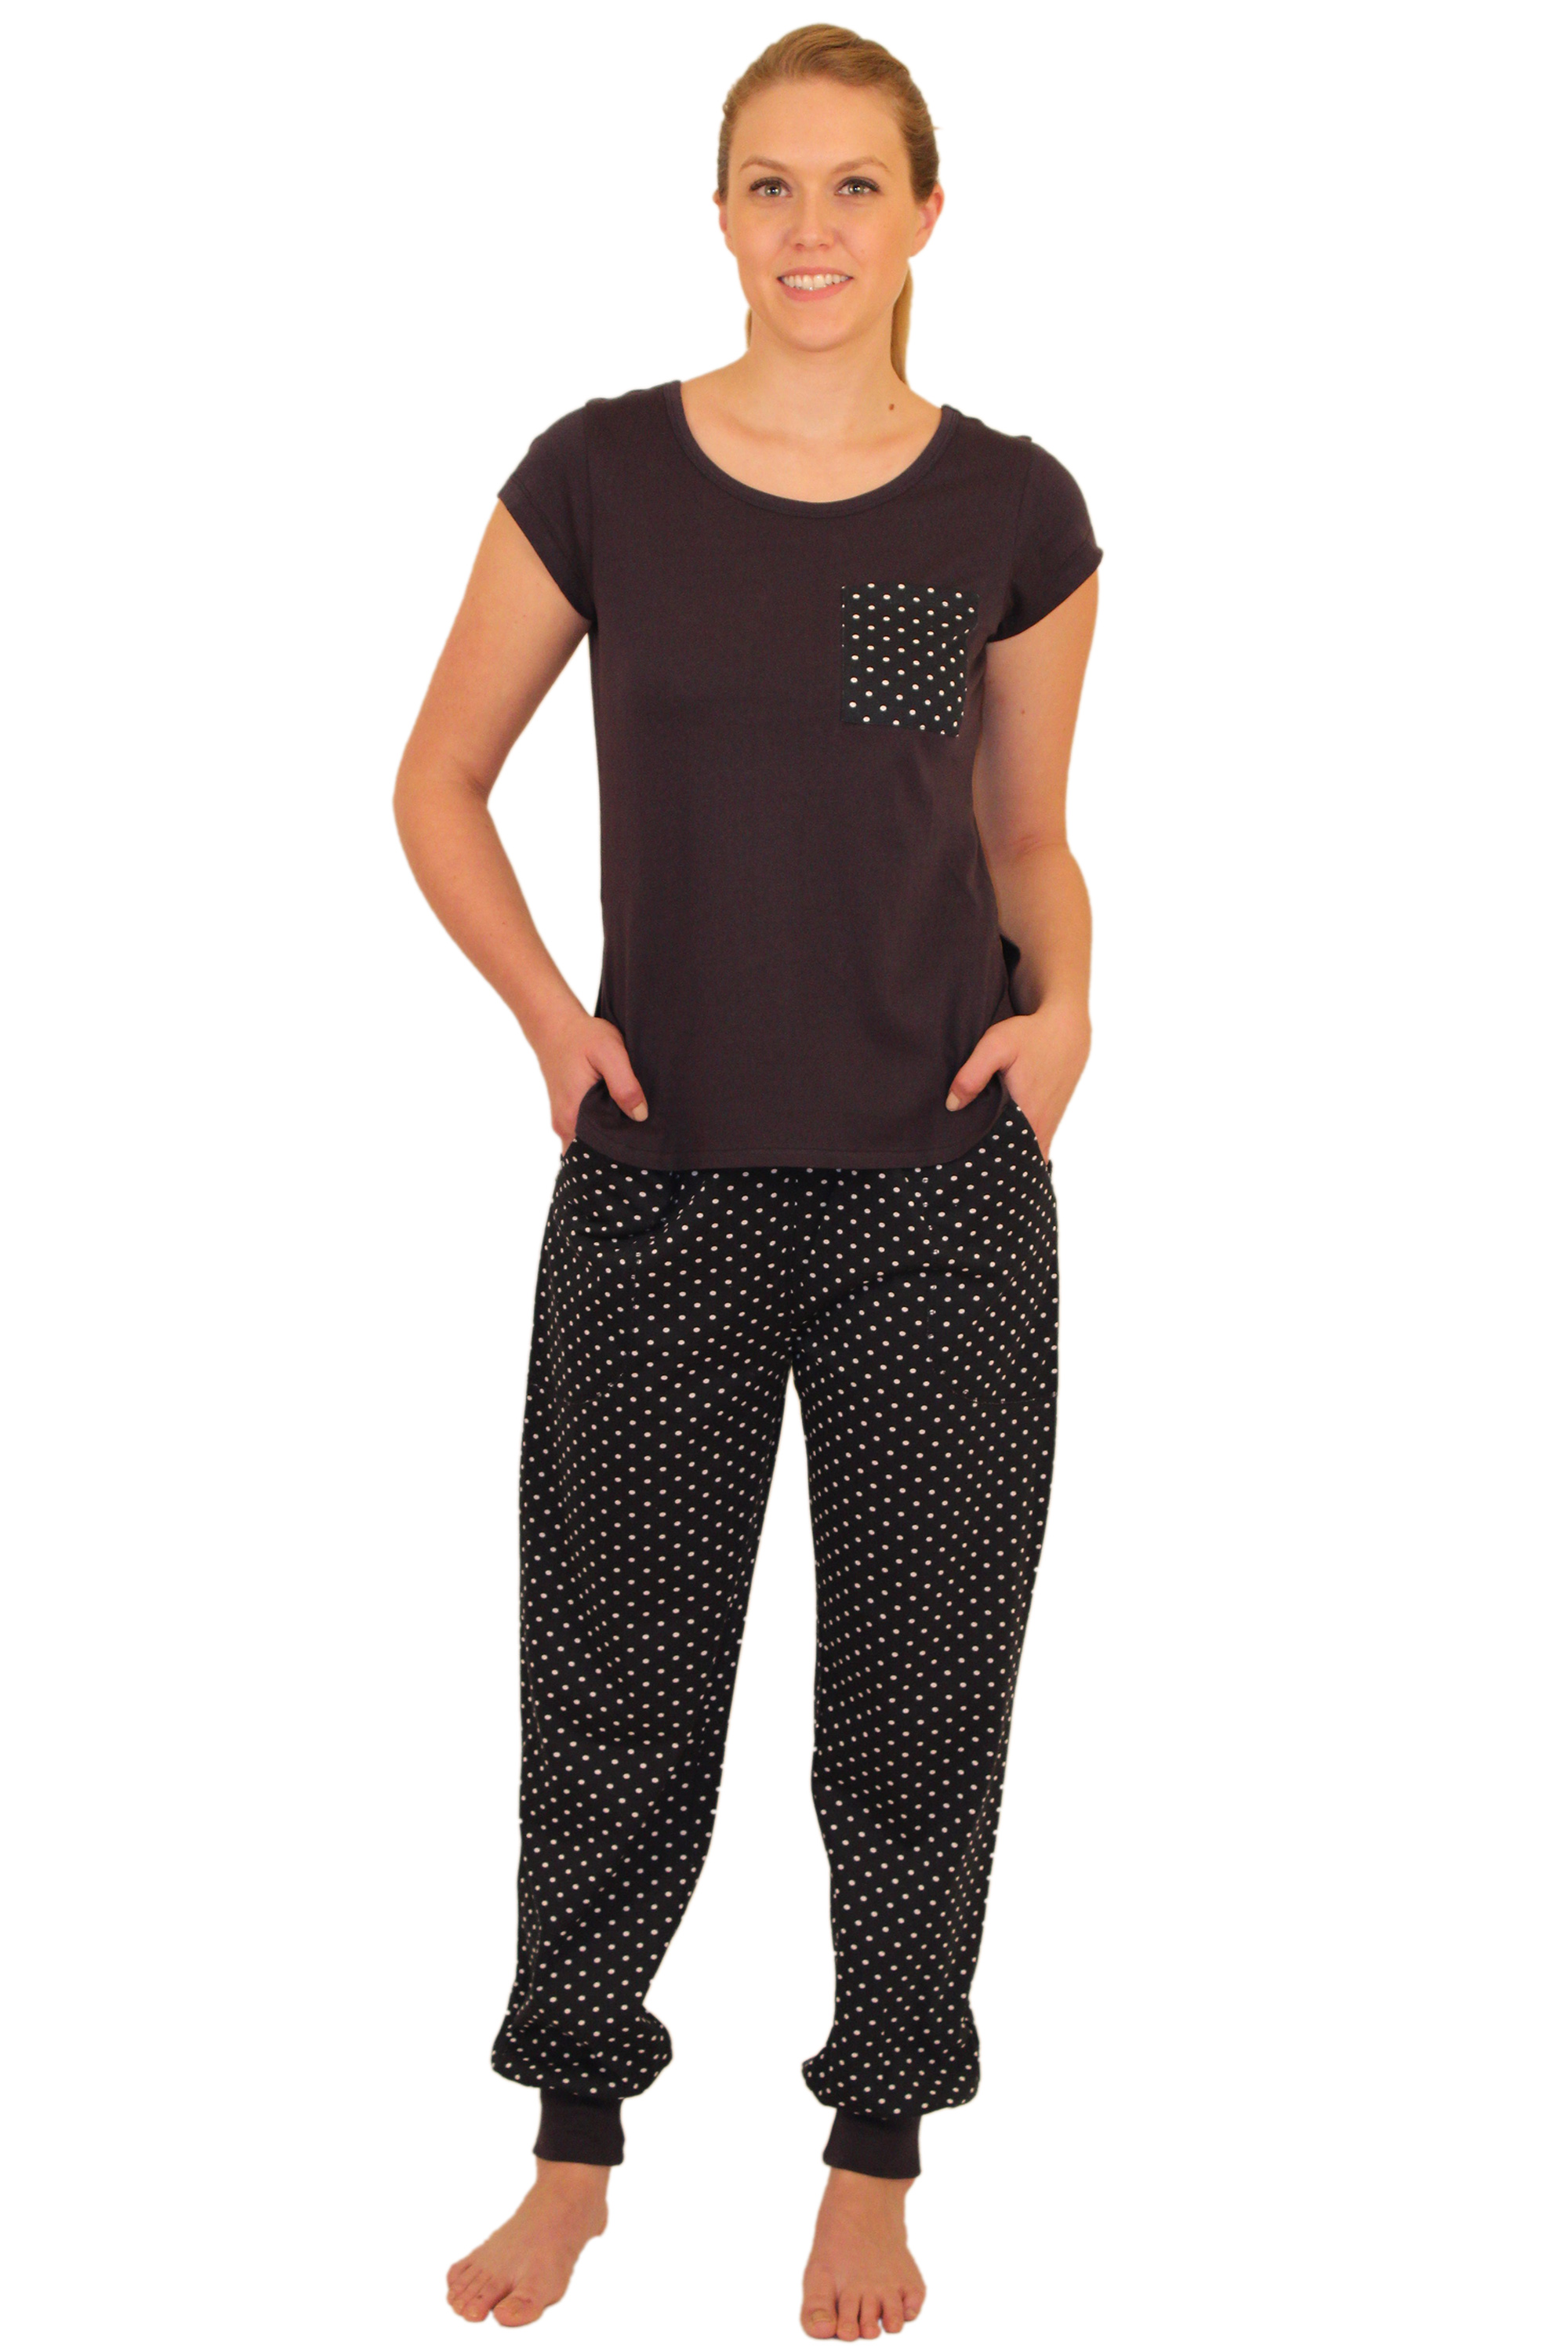 ApparelNY Stylish Knit Pajama Set with Stylish Tee-shirt and Cuffed Pants -$19.99 Colors: Floral Polkadots Solid. Sizes:  XS S M L XL